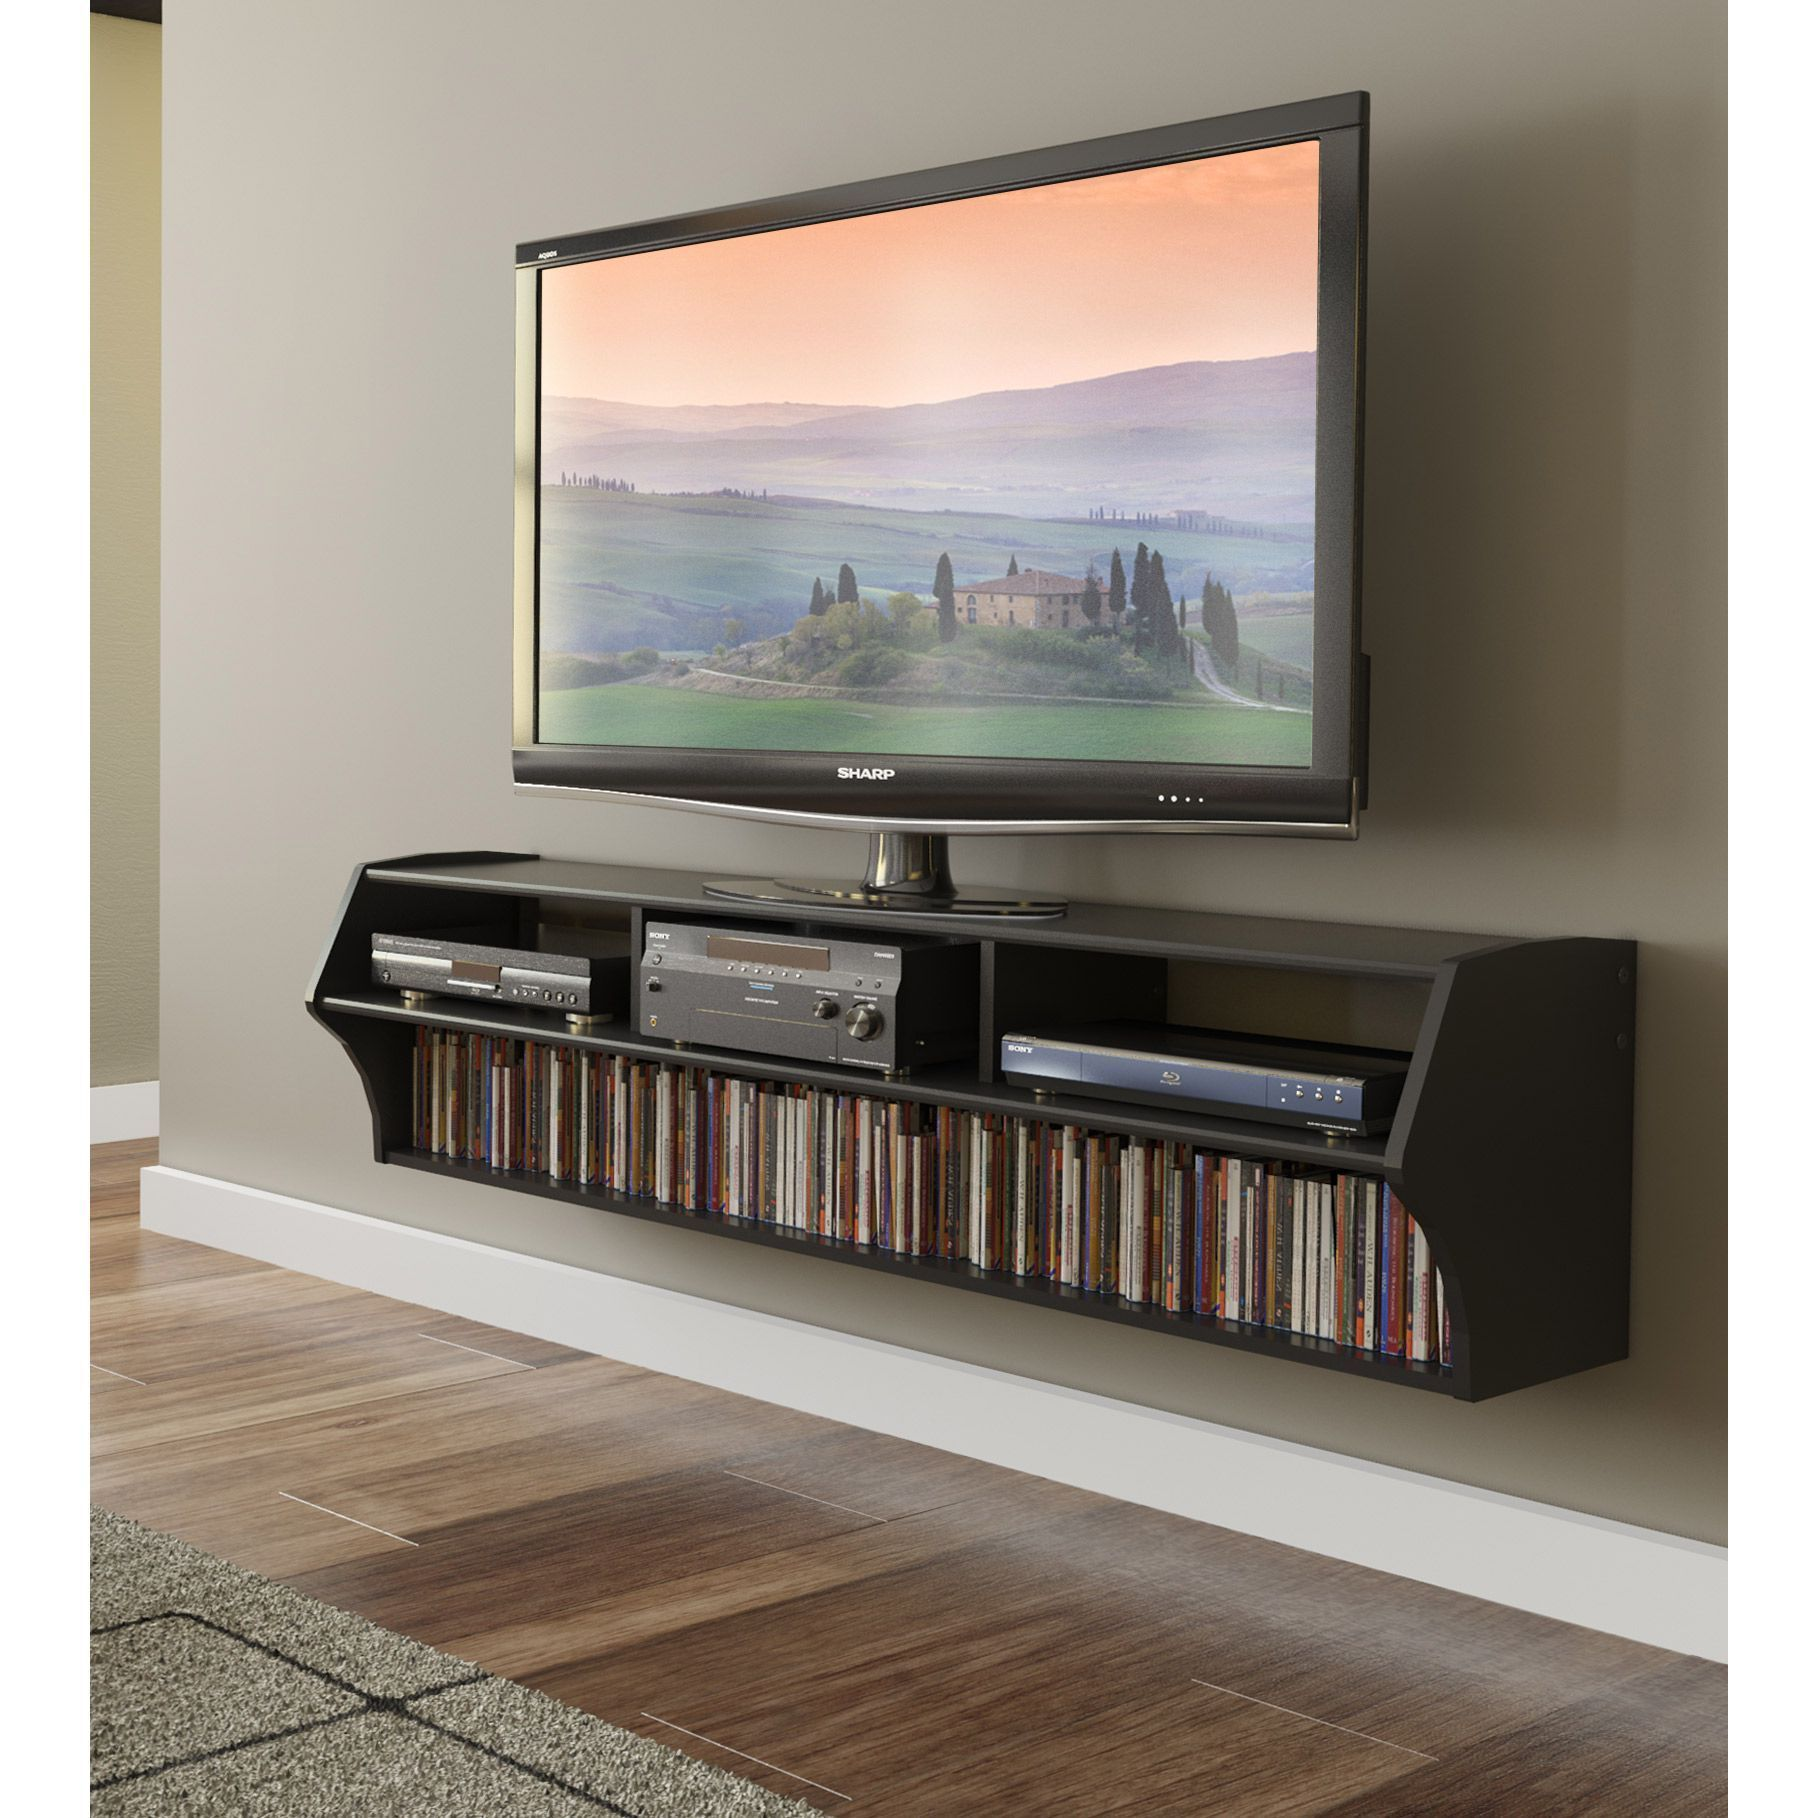 50 Cool TV Stand Designs for Your Home tv stand ideas diy tv stand